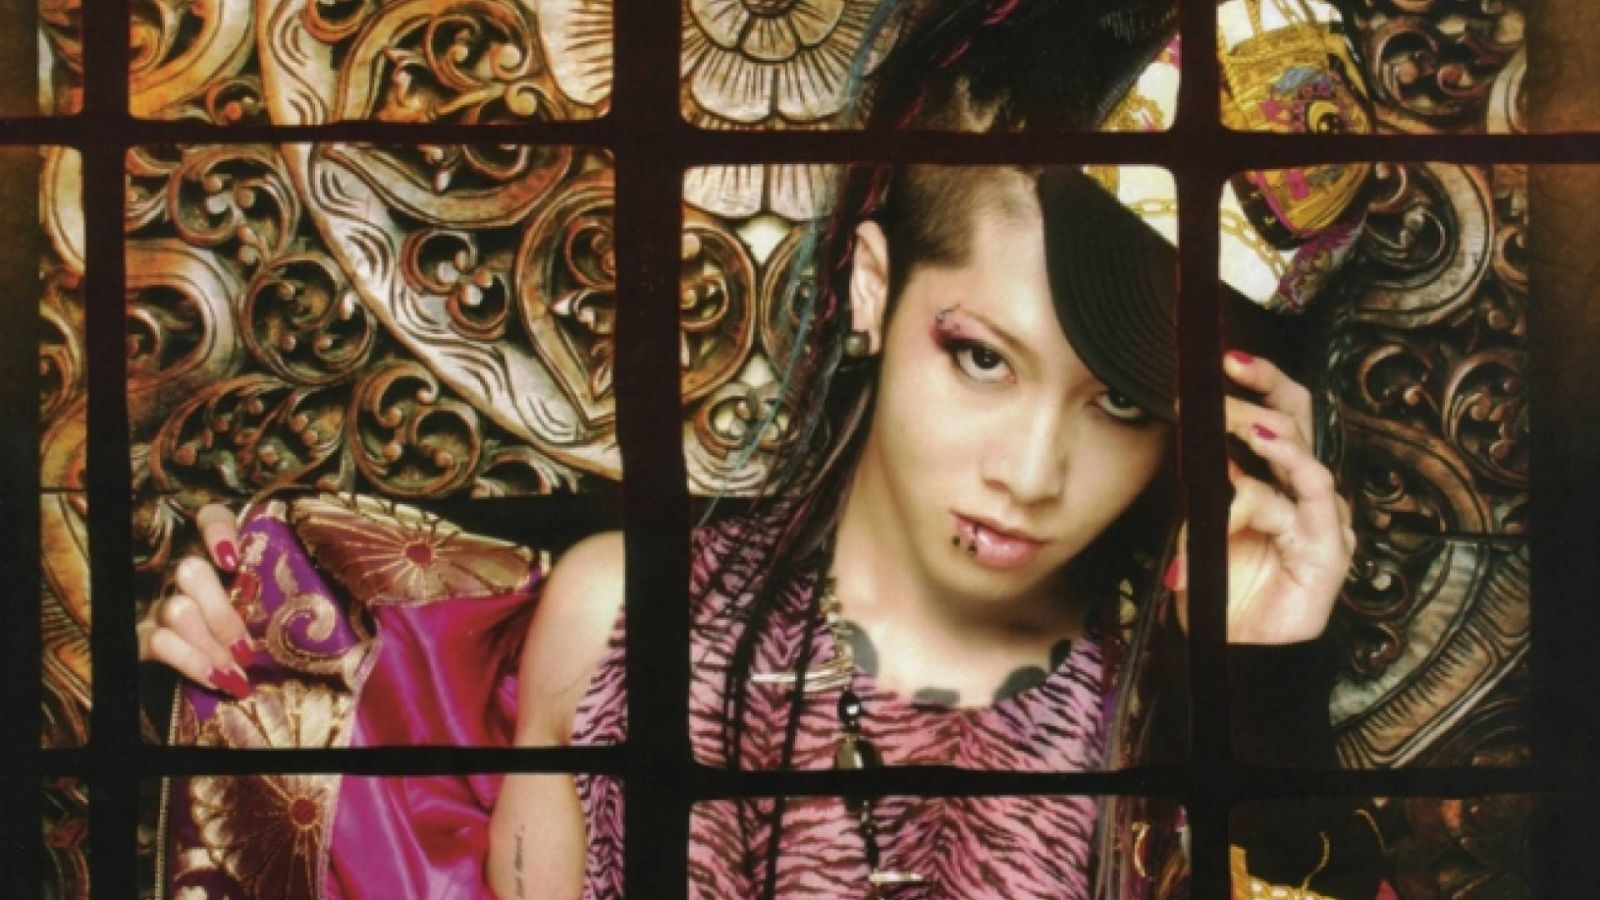 Zy 37: Miyavi © 2007 Zy.connection Inc. All Rights Reserved.